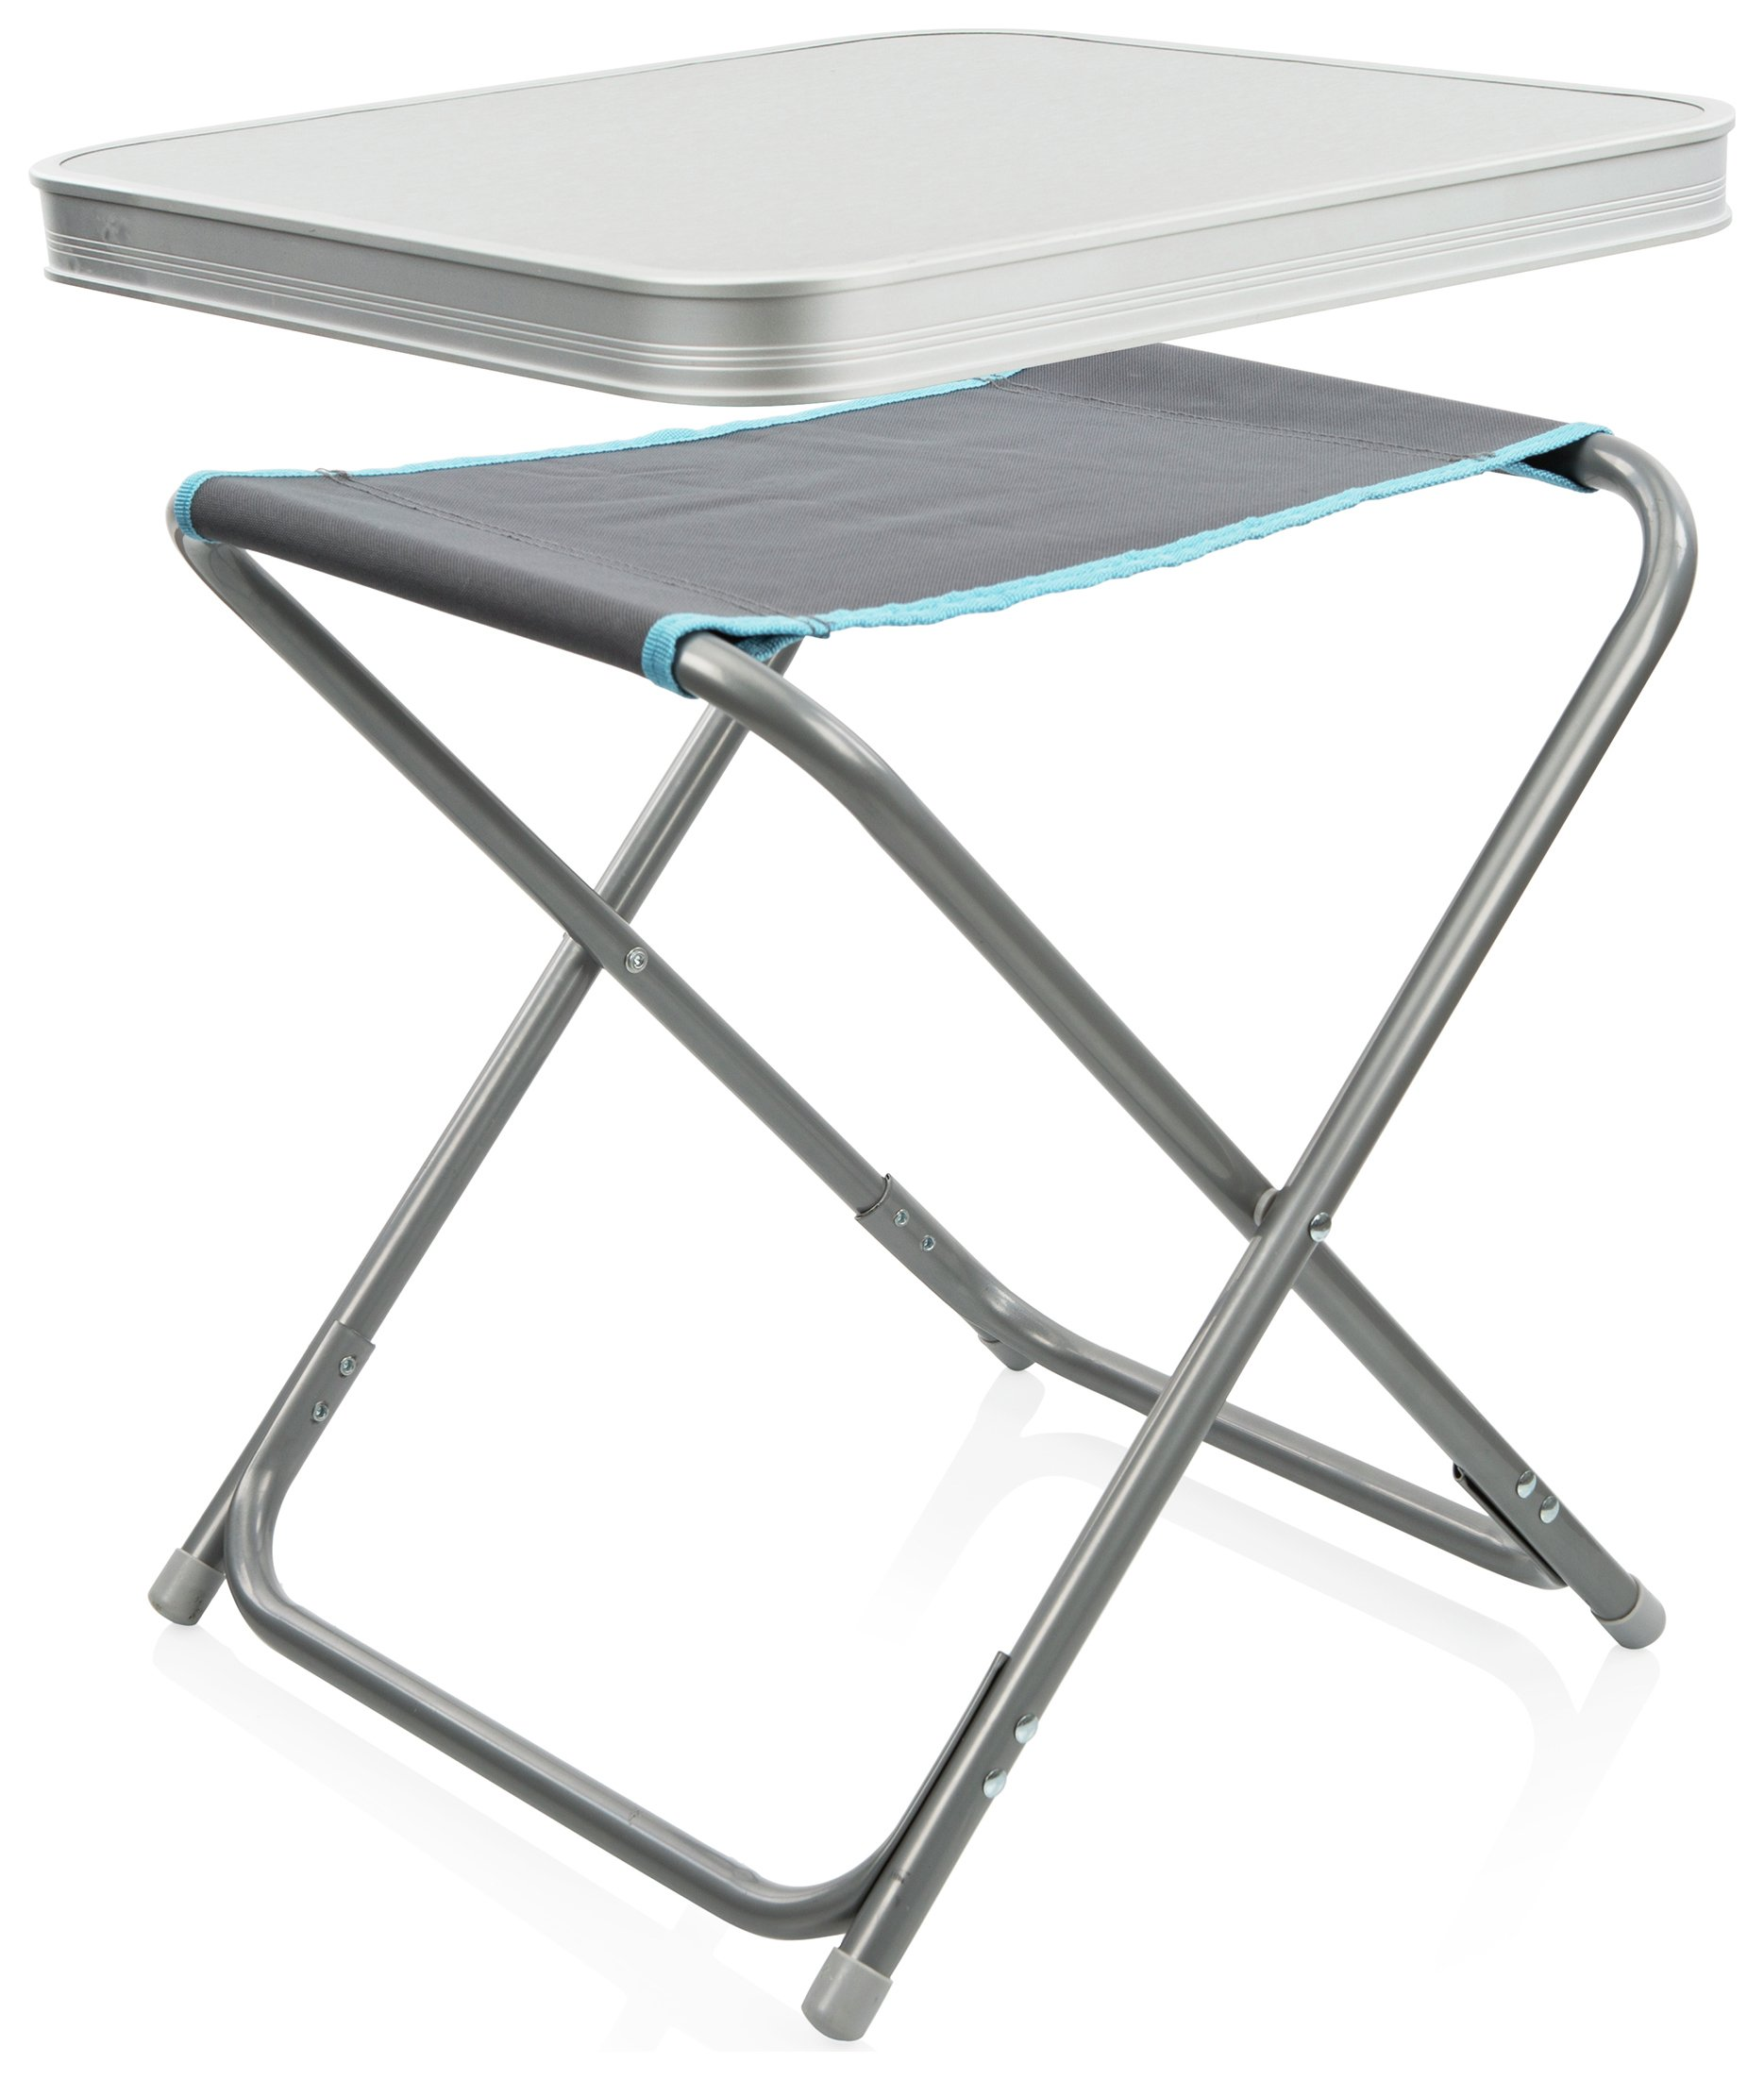 Image of Campart Travel Folding Fishing Chair and Removable Table